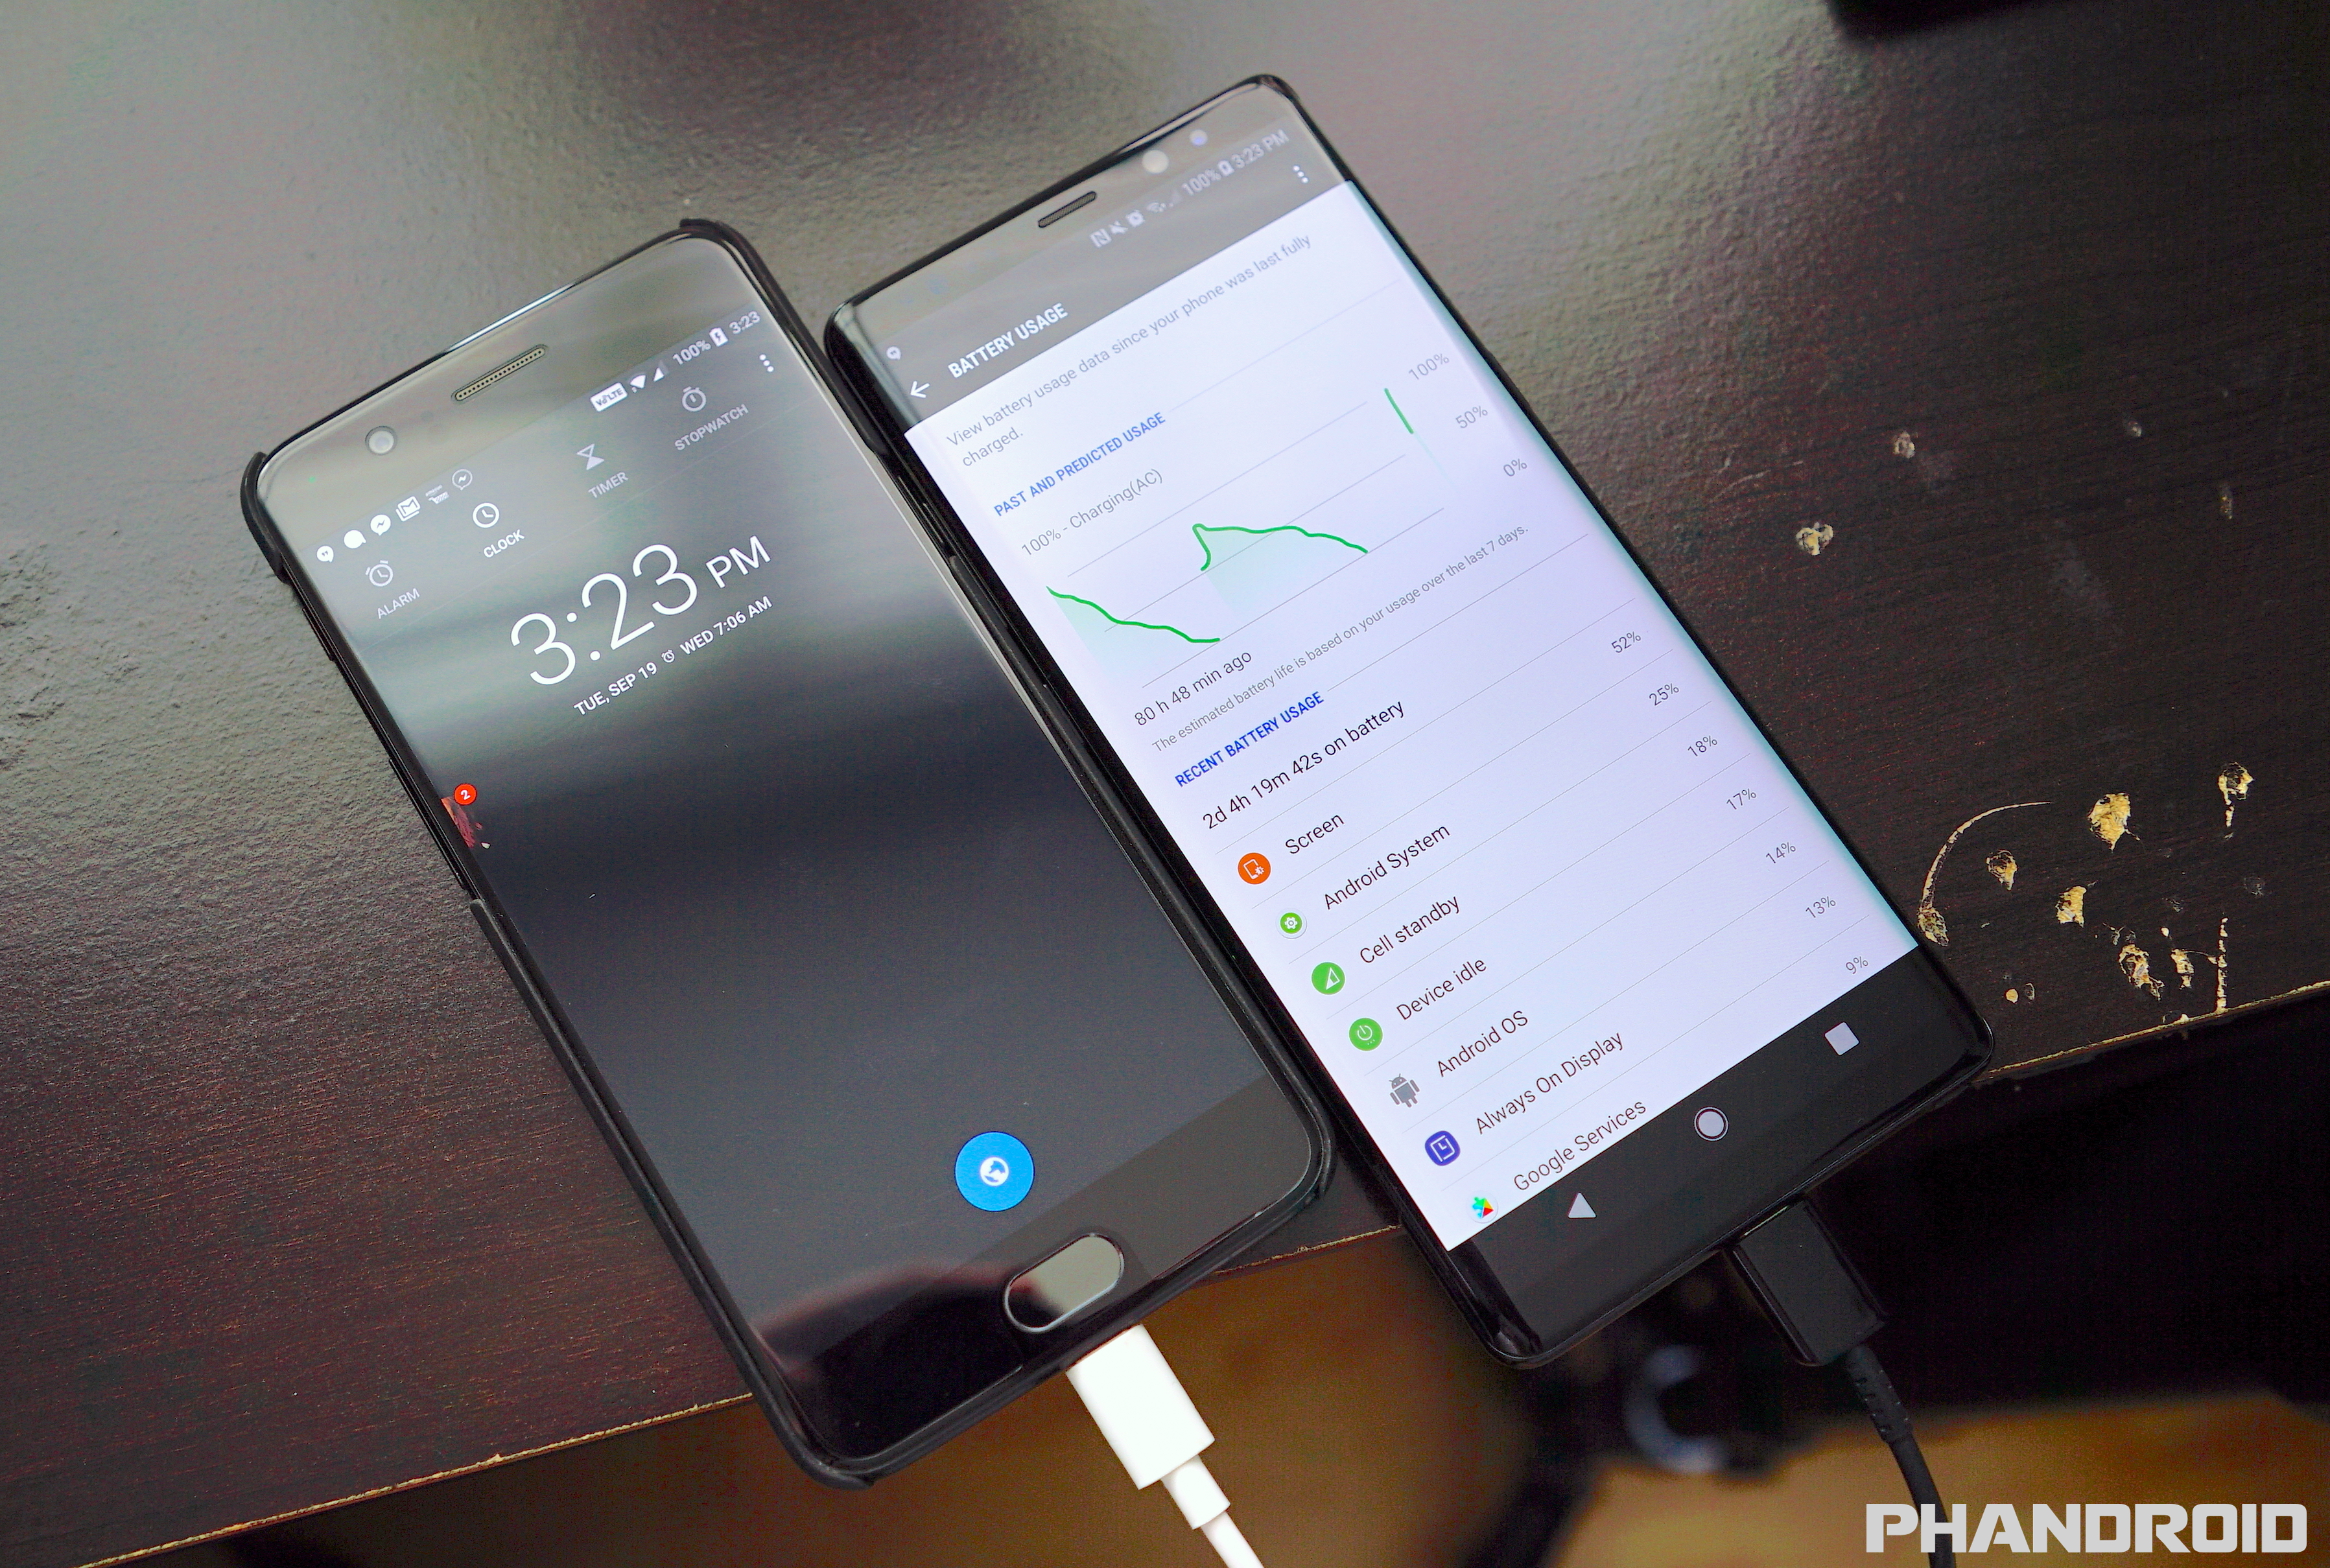 Galaxy Note 8 Battery 0 To 100 In 6 420 Seconds